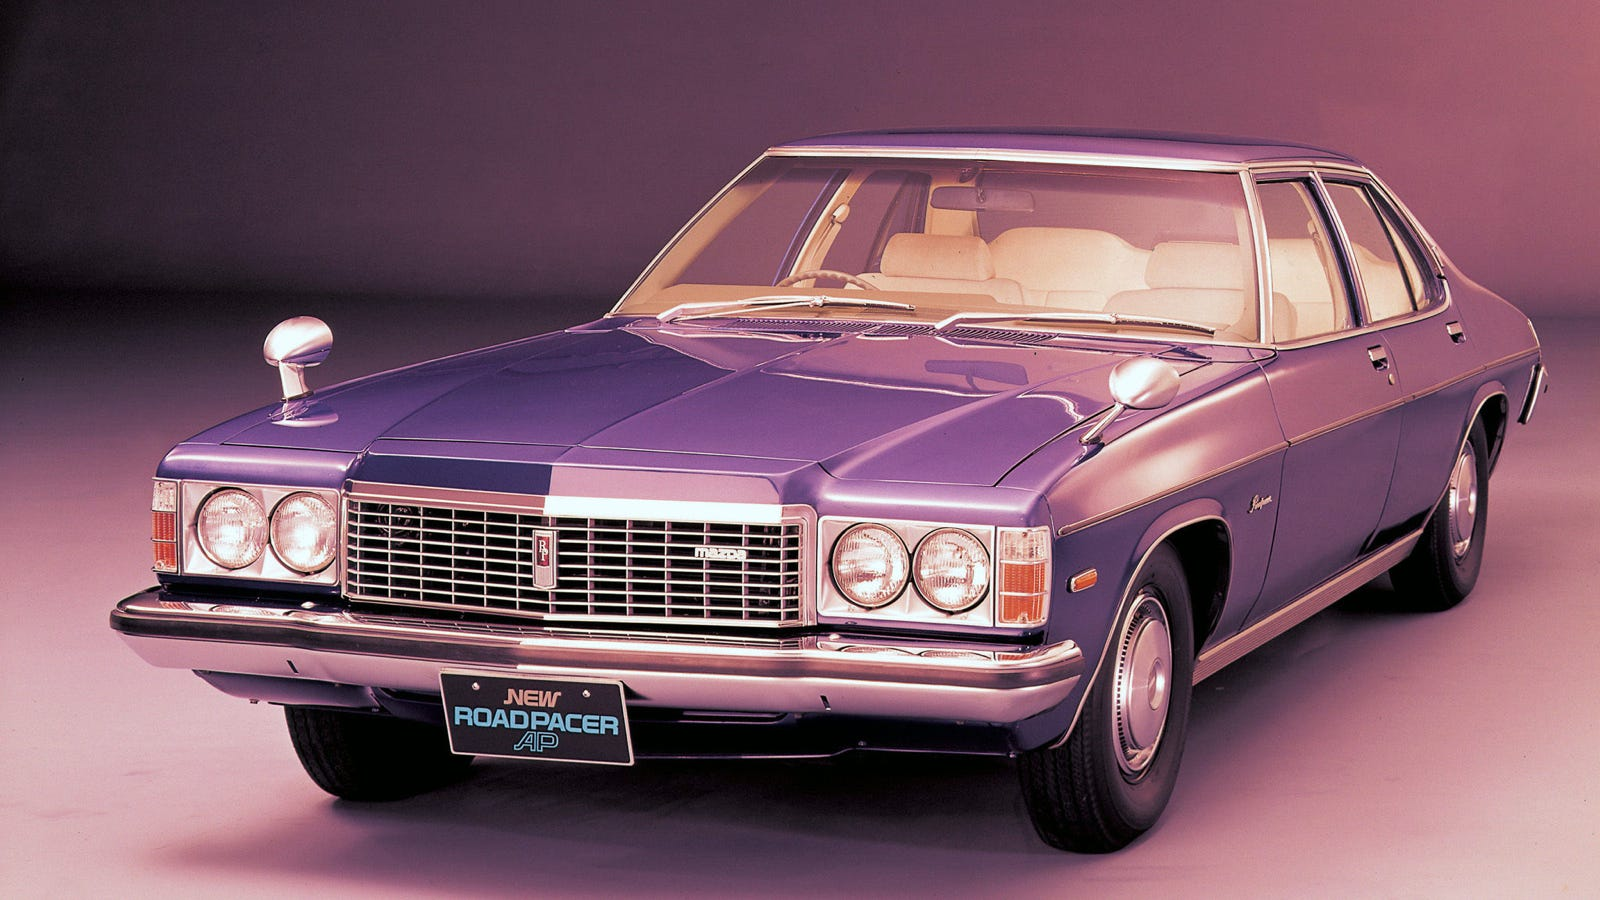 The Mazda Roadpacer Was A Big Holden With A Rotary Engine